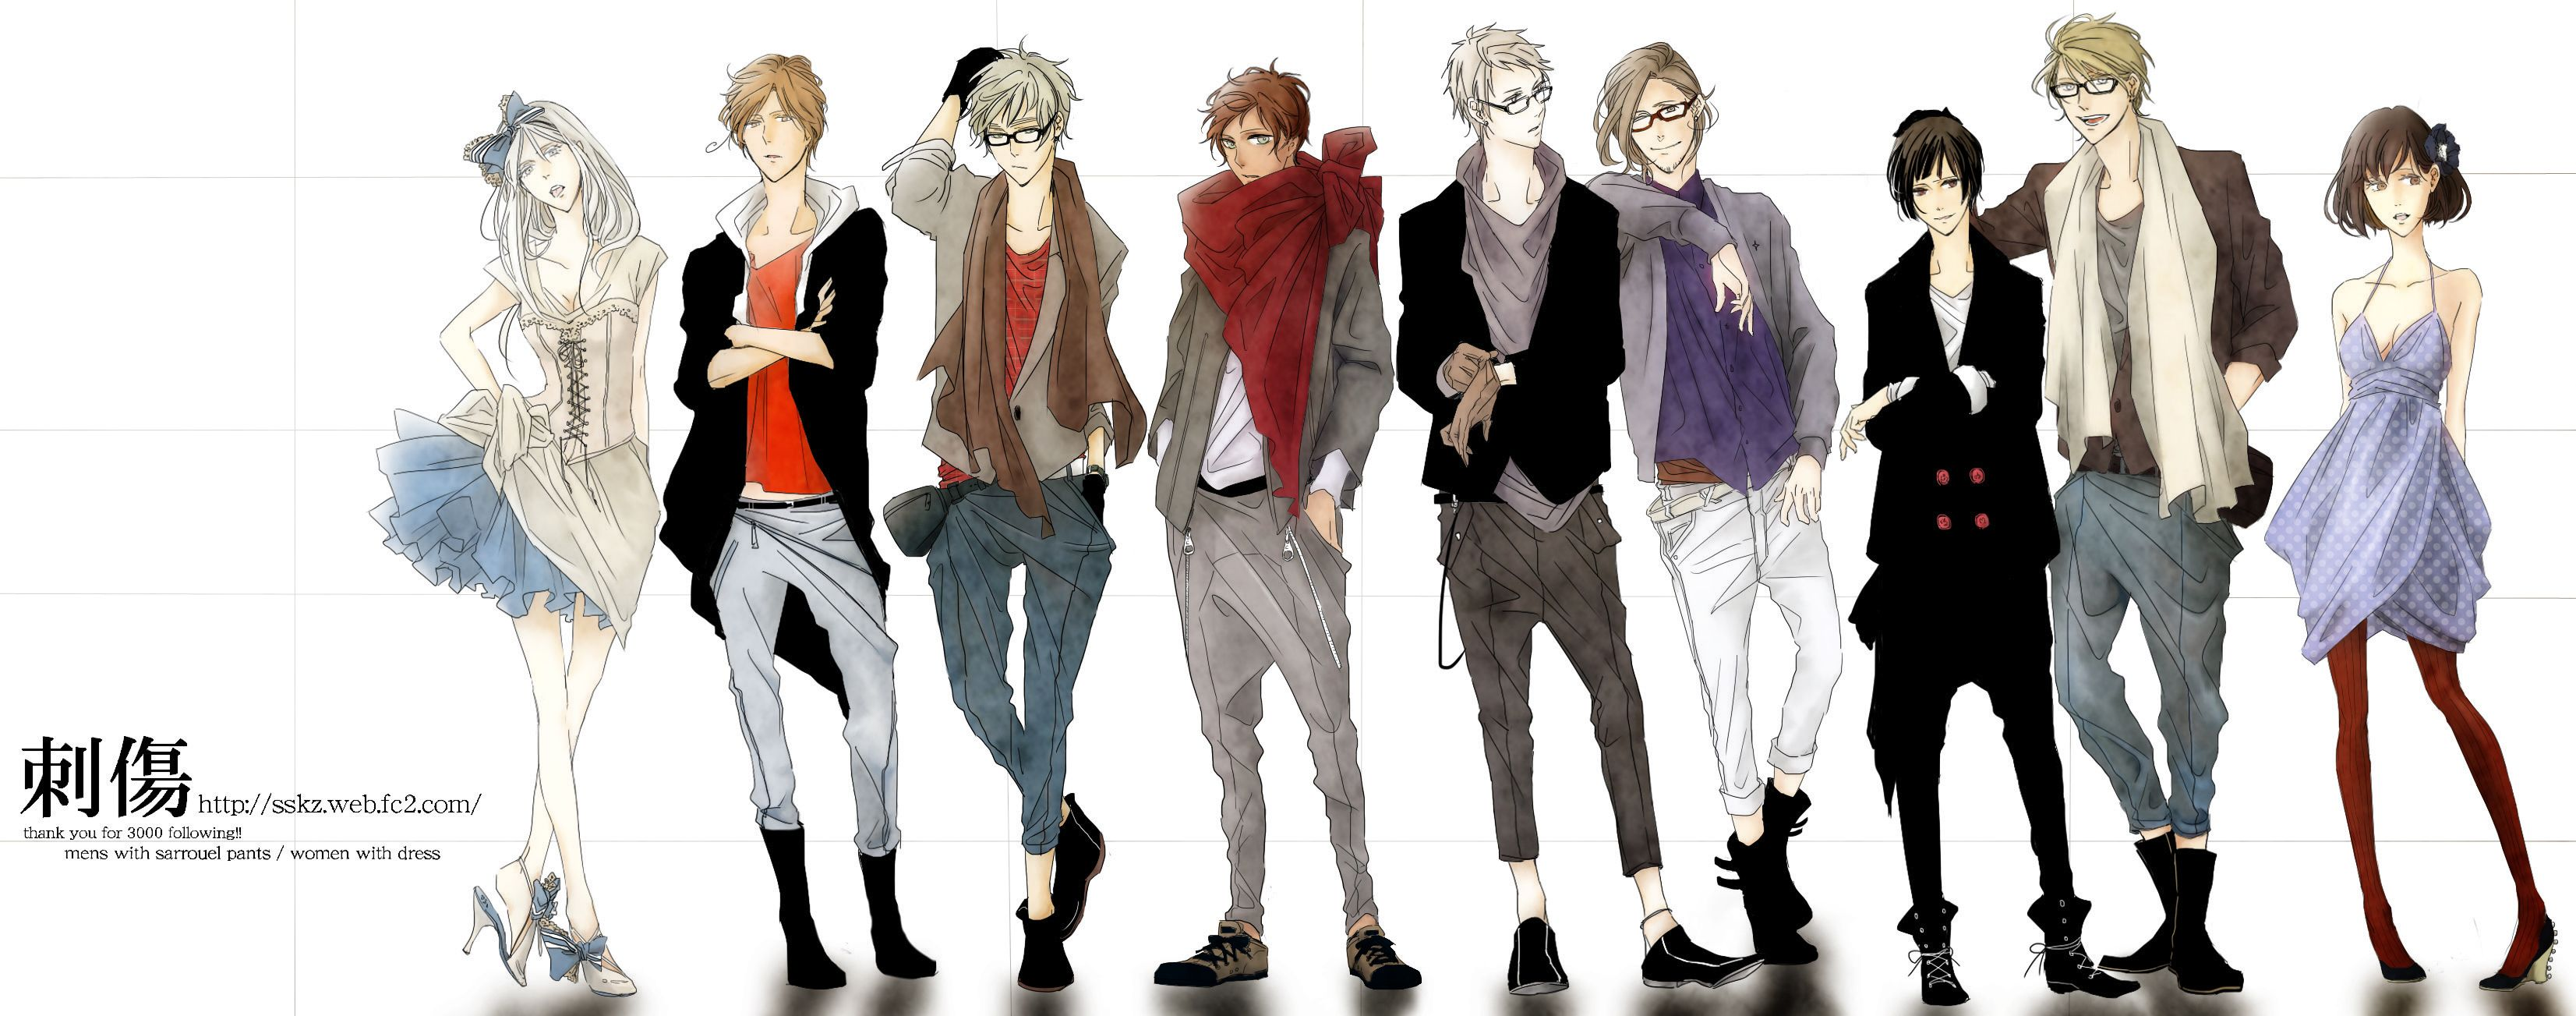 Anime Outfits Pinterest